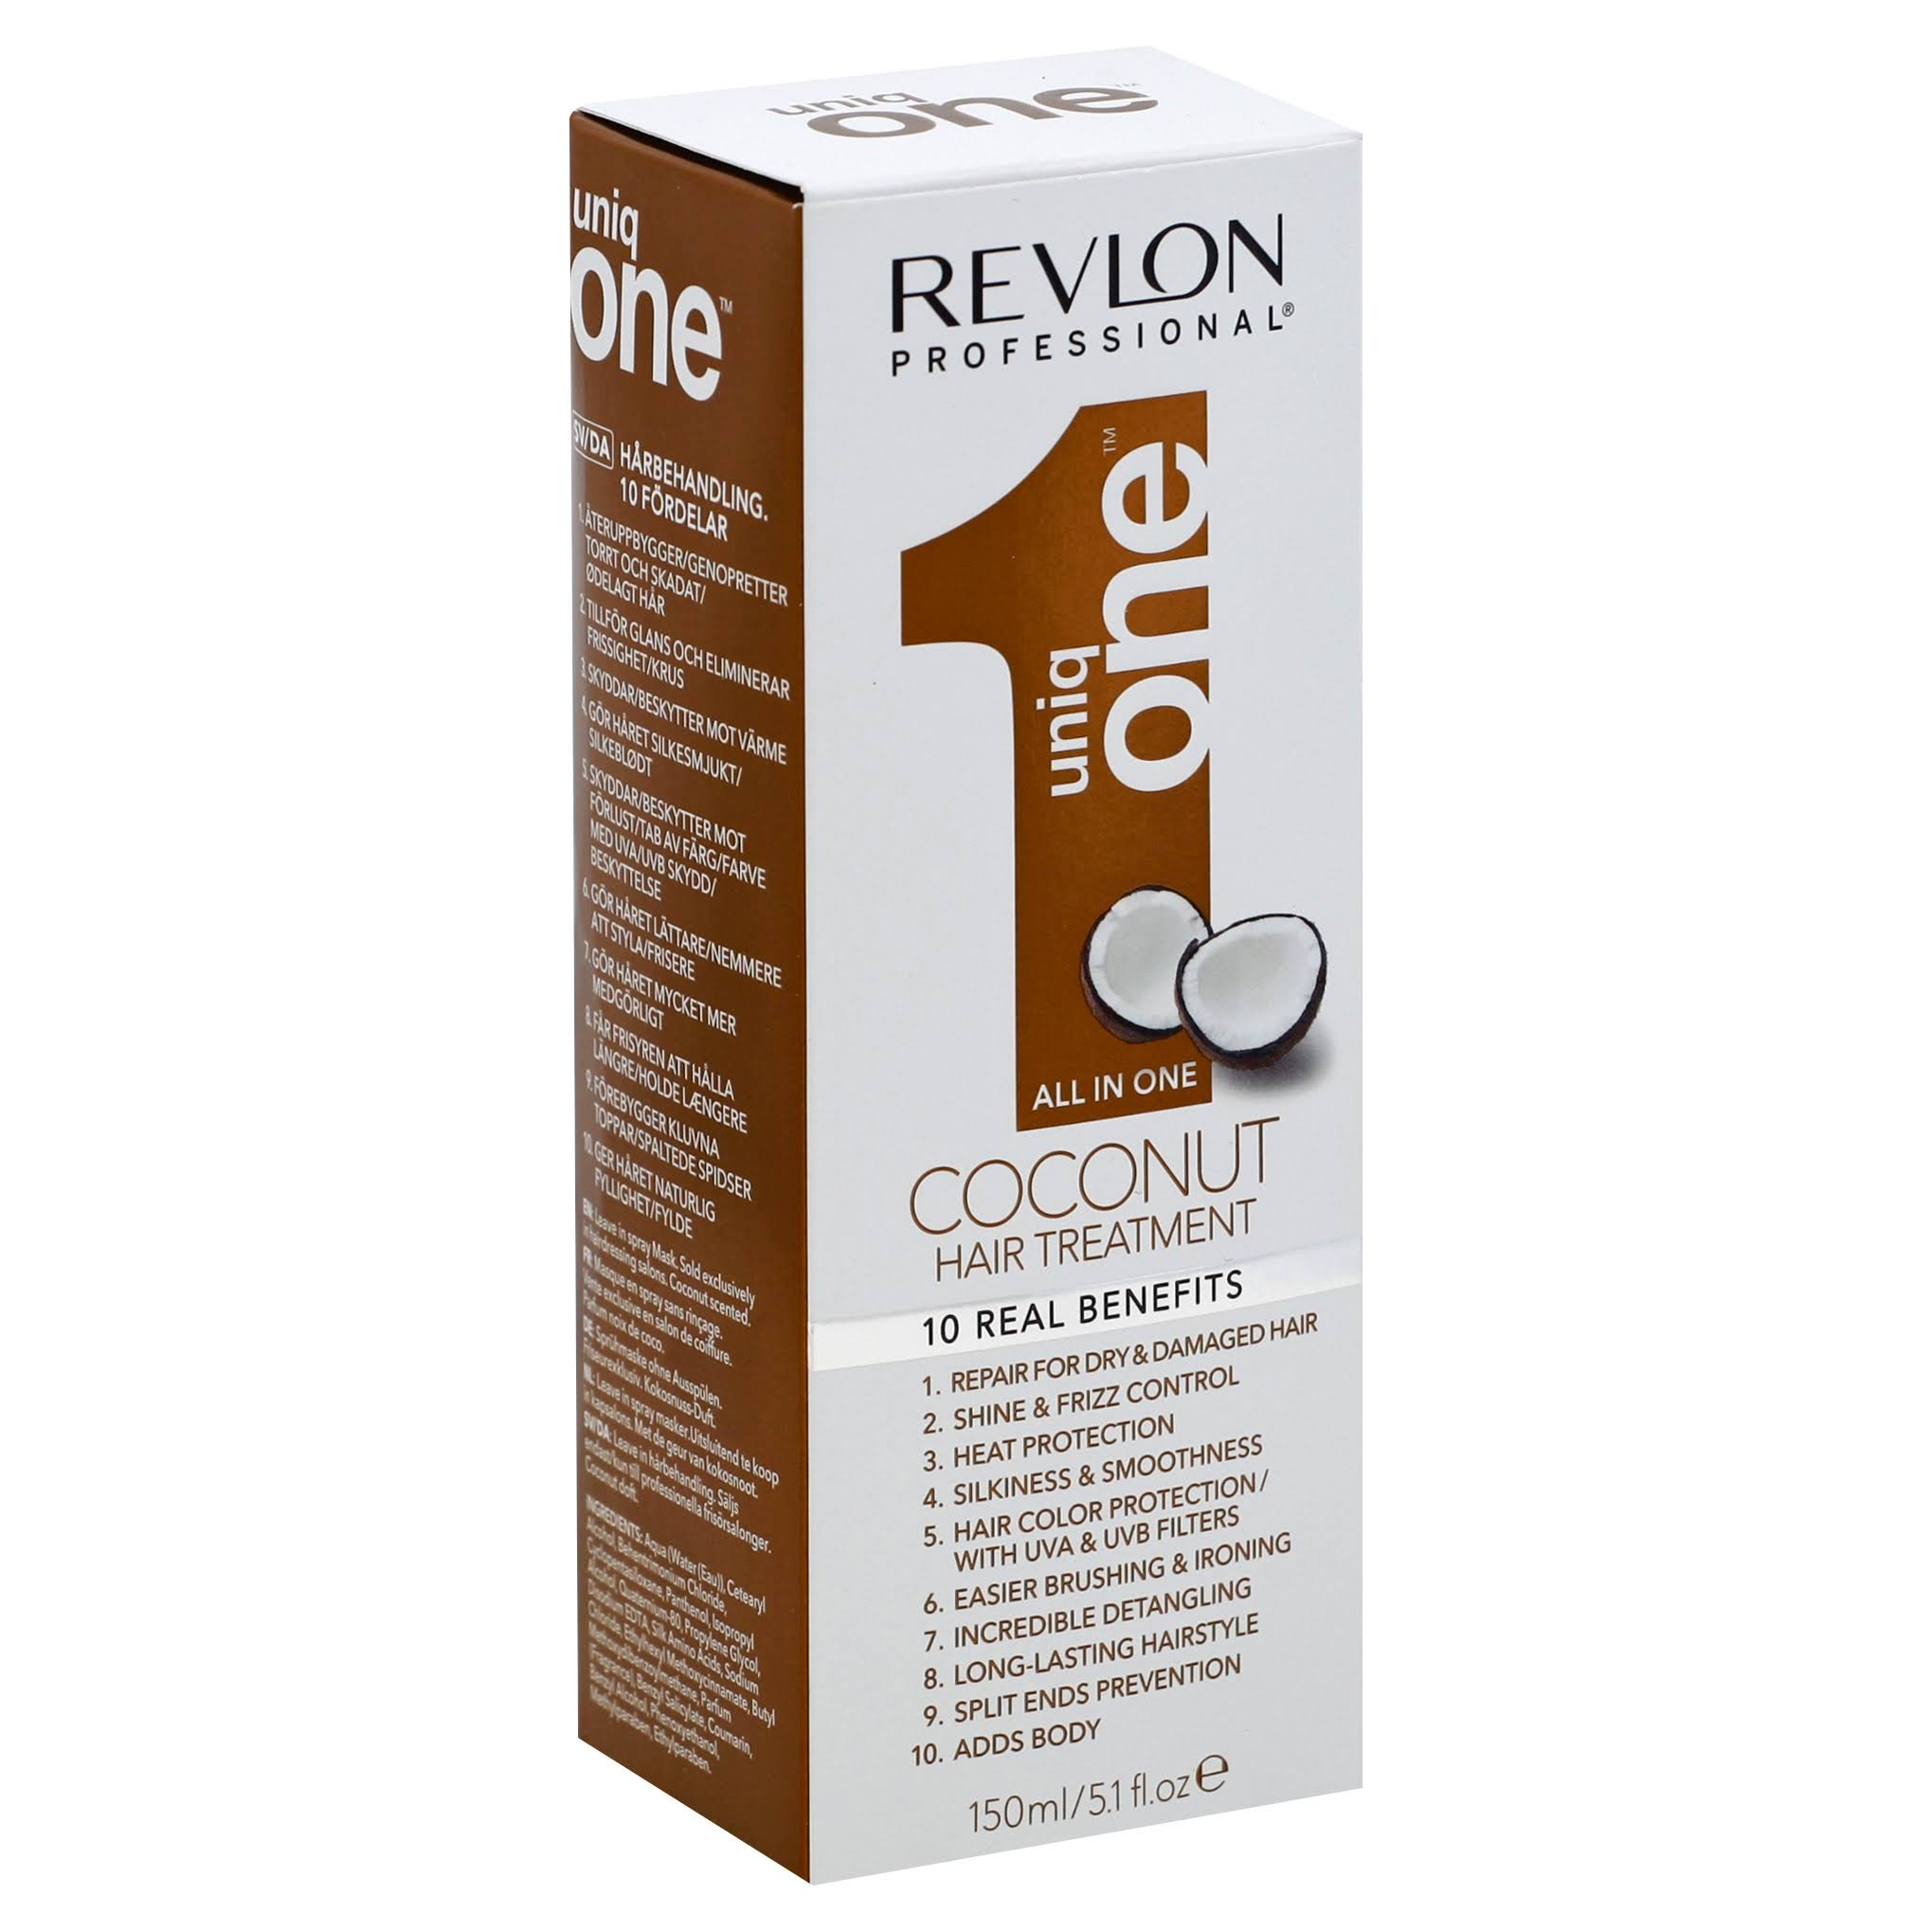 Revlon Professional Uniq One All in One Coconut Hair Treatment - 150ml